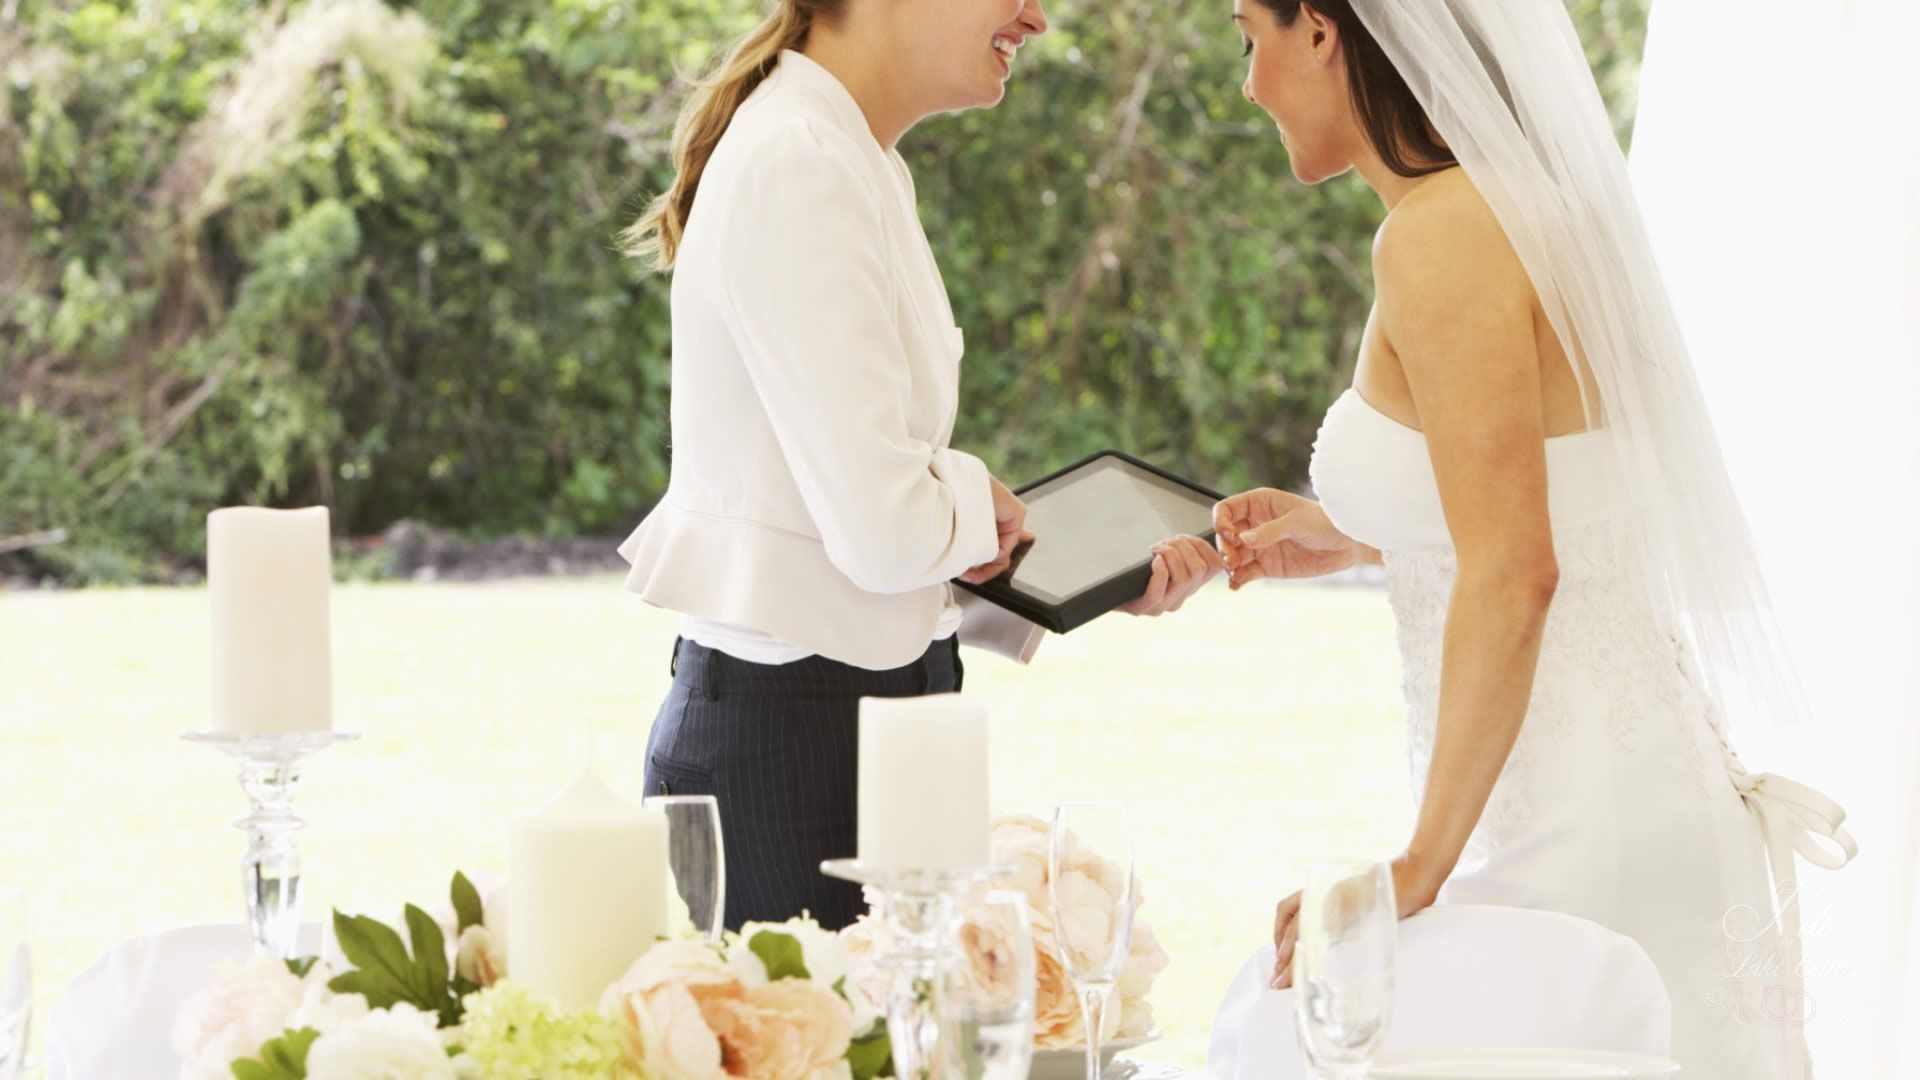 5 Reasons to Hire a Wedding Planner | wedding planner on lake Como